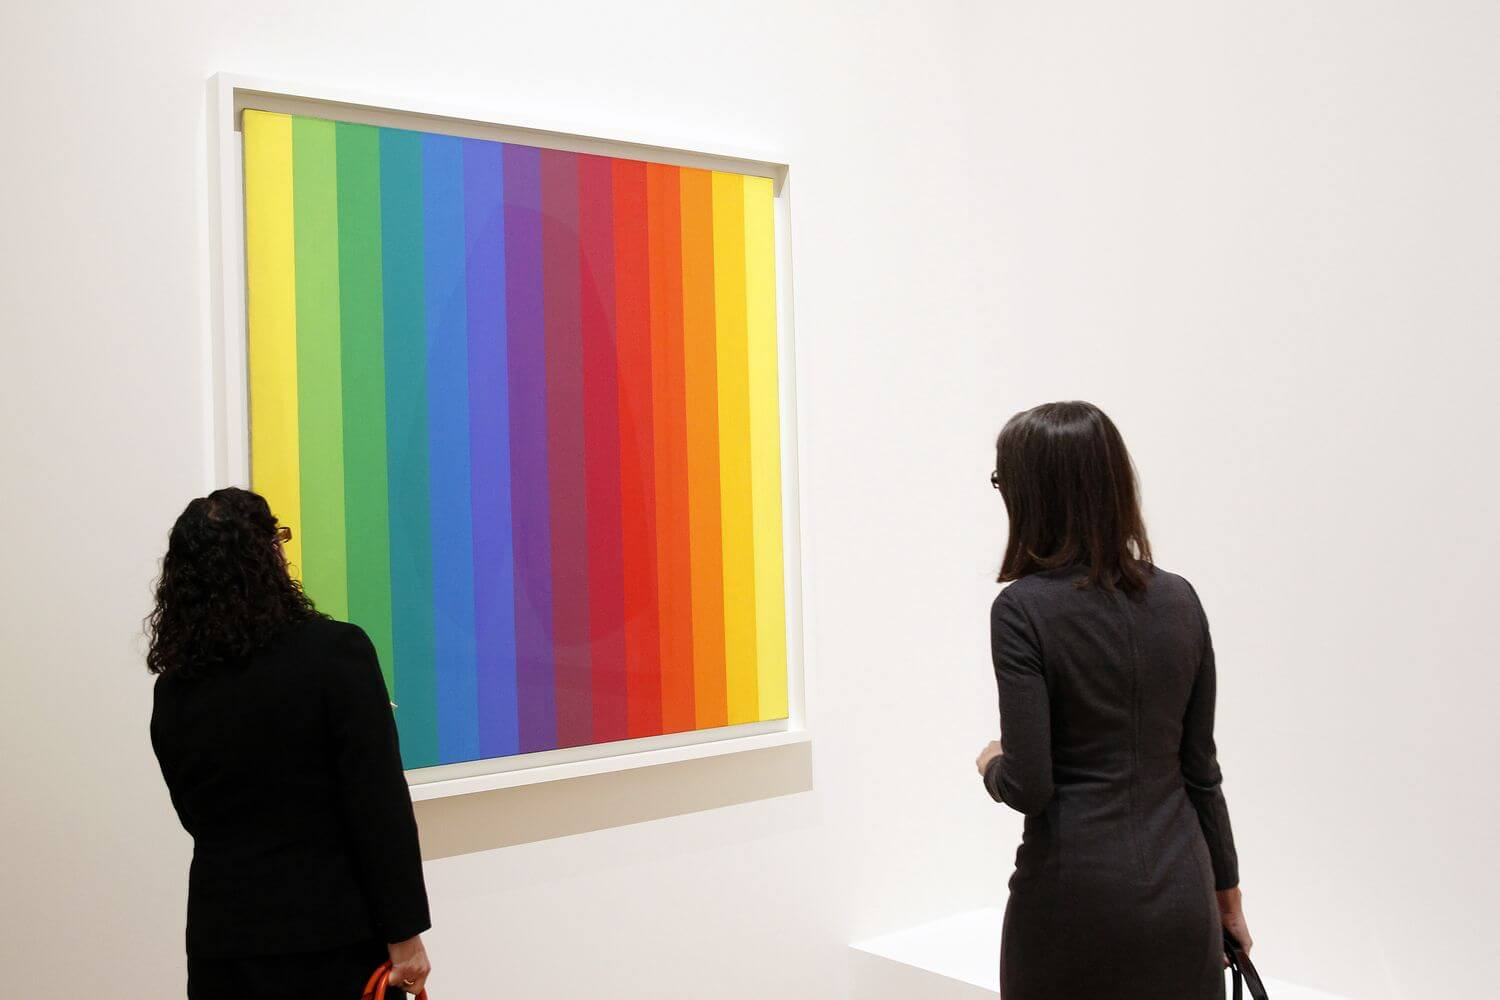 Vibrant Ellsworth Kelly plasmado en sellos postales